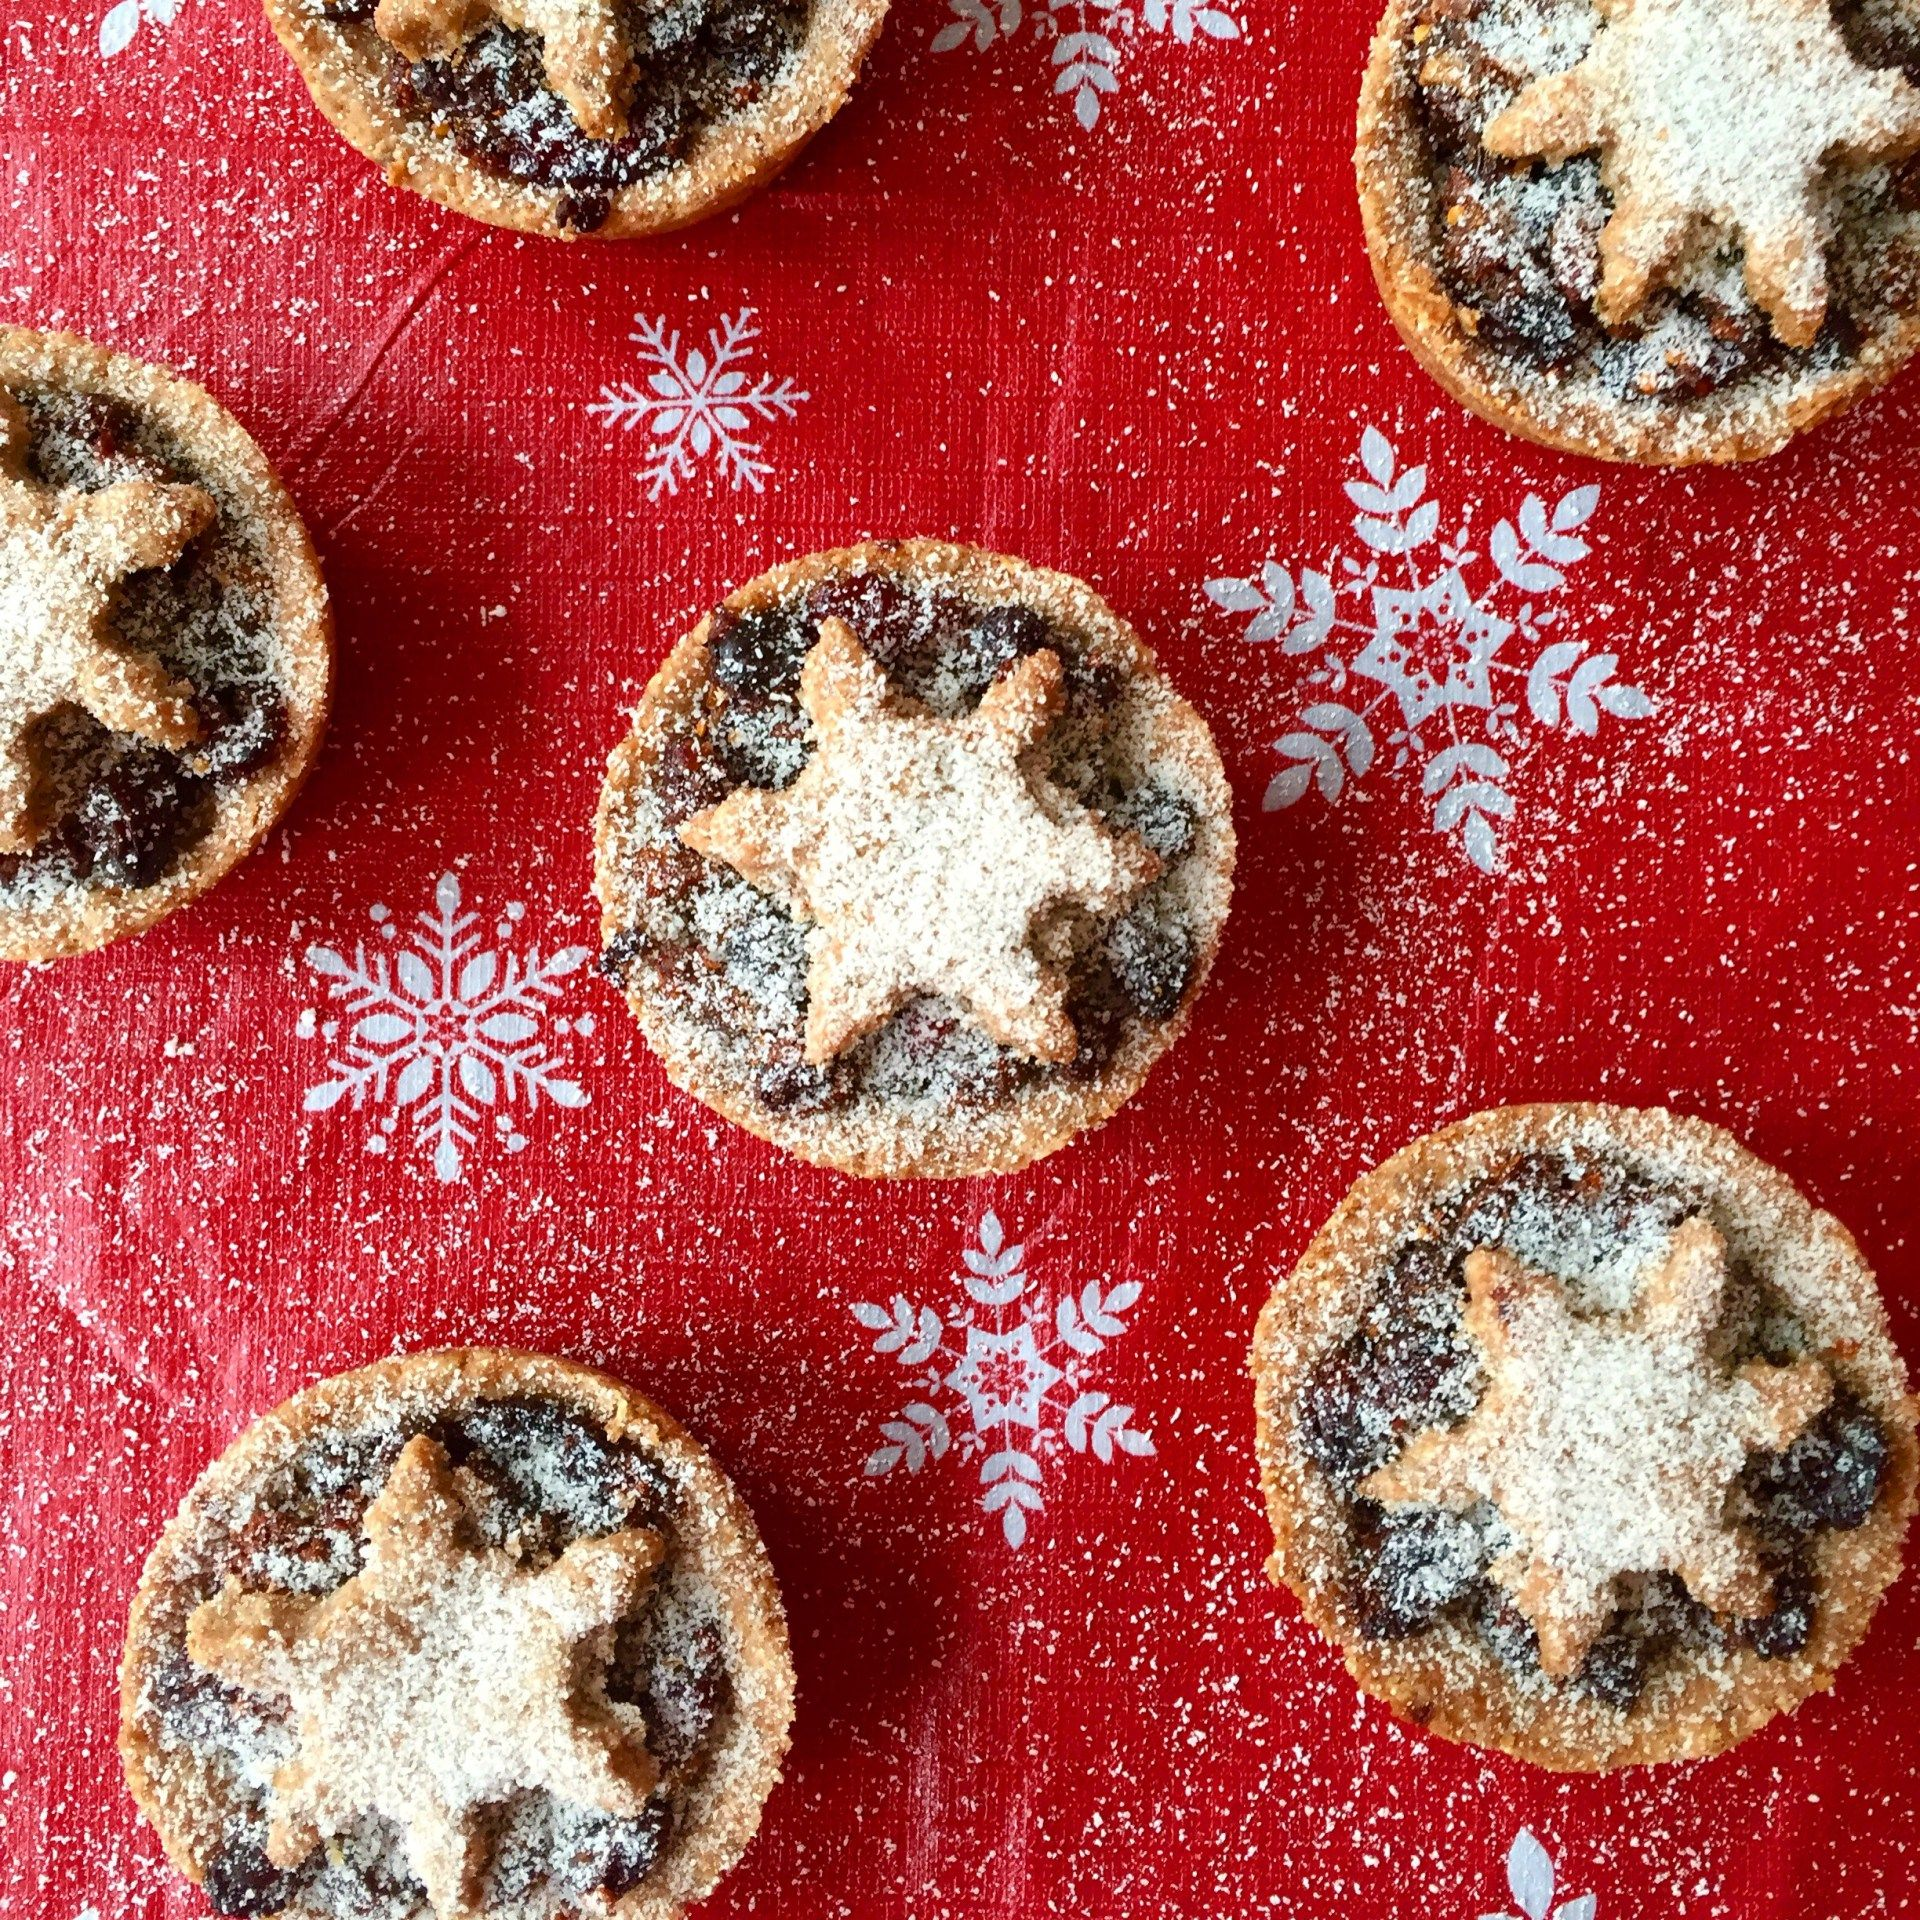 Mince pies recipe - Image 1